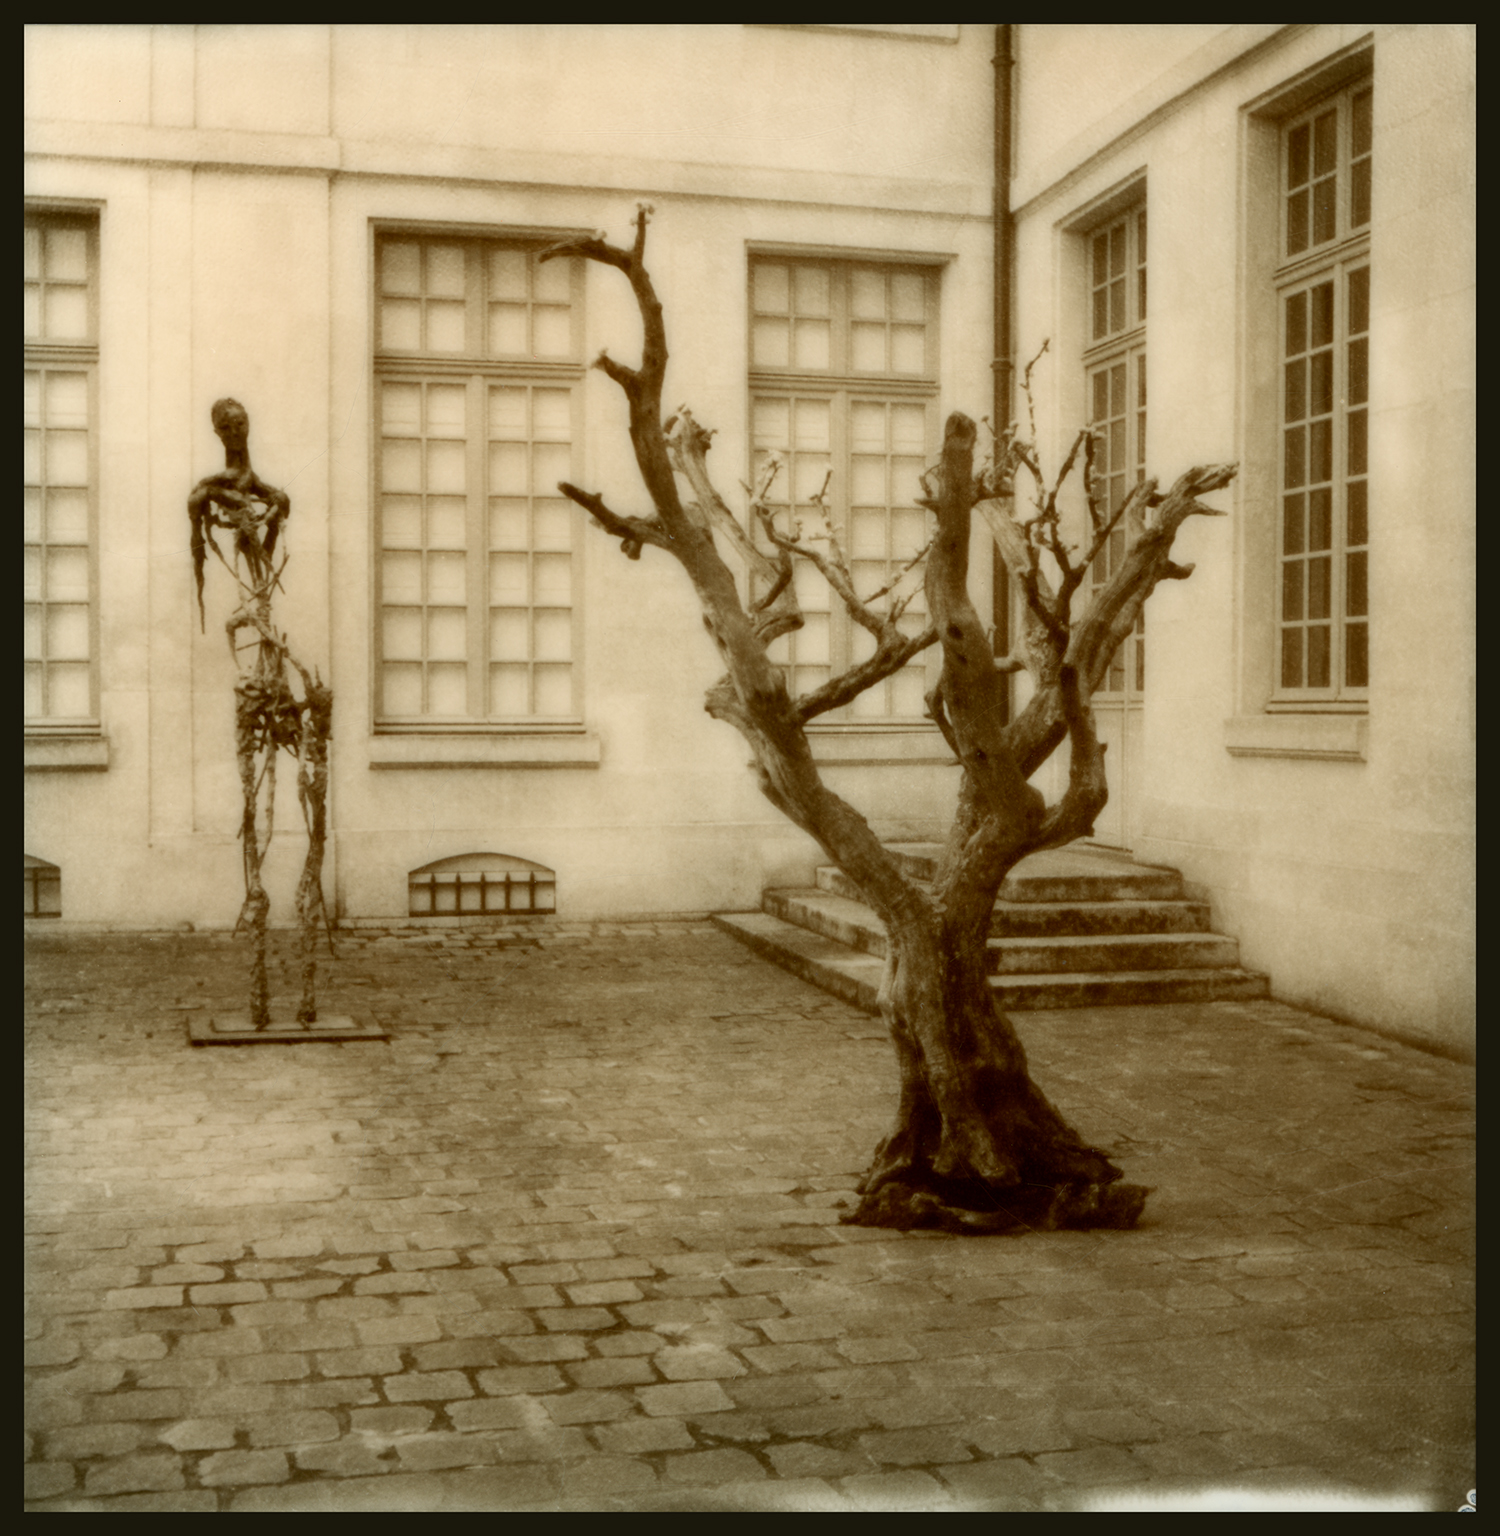 rue des Archives #62_Musee des Chasses Courtyard_GOA.3.07.17.001.jpg